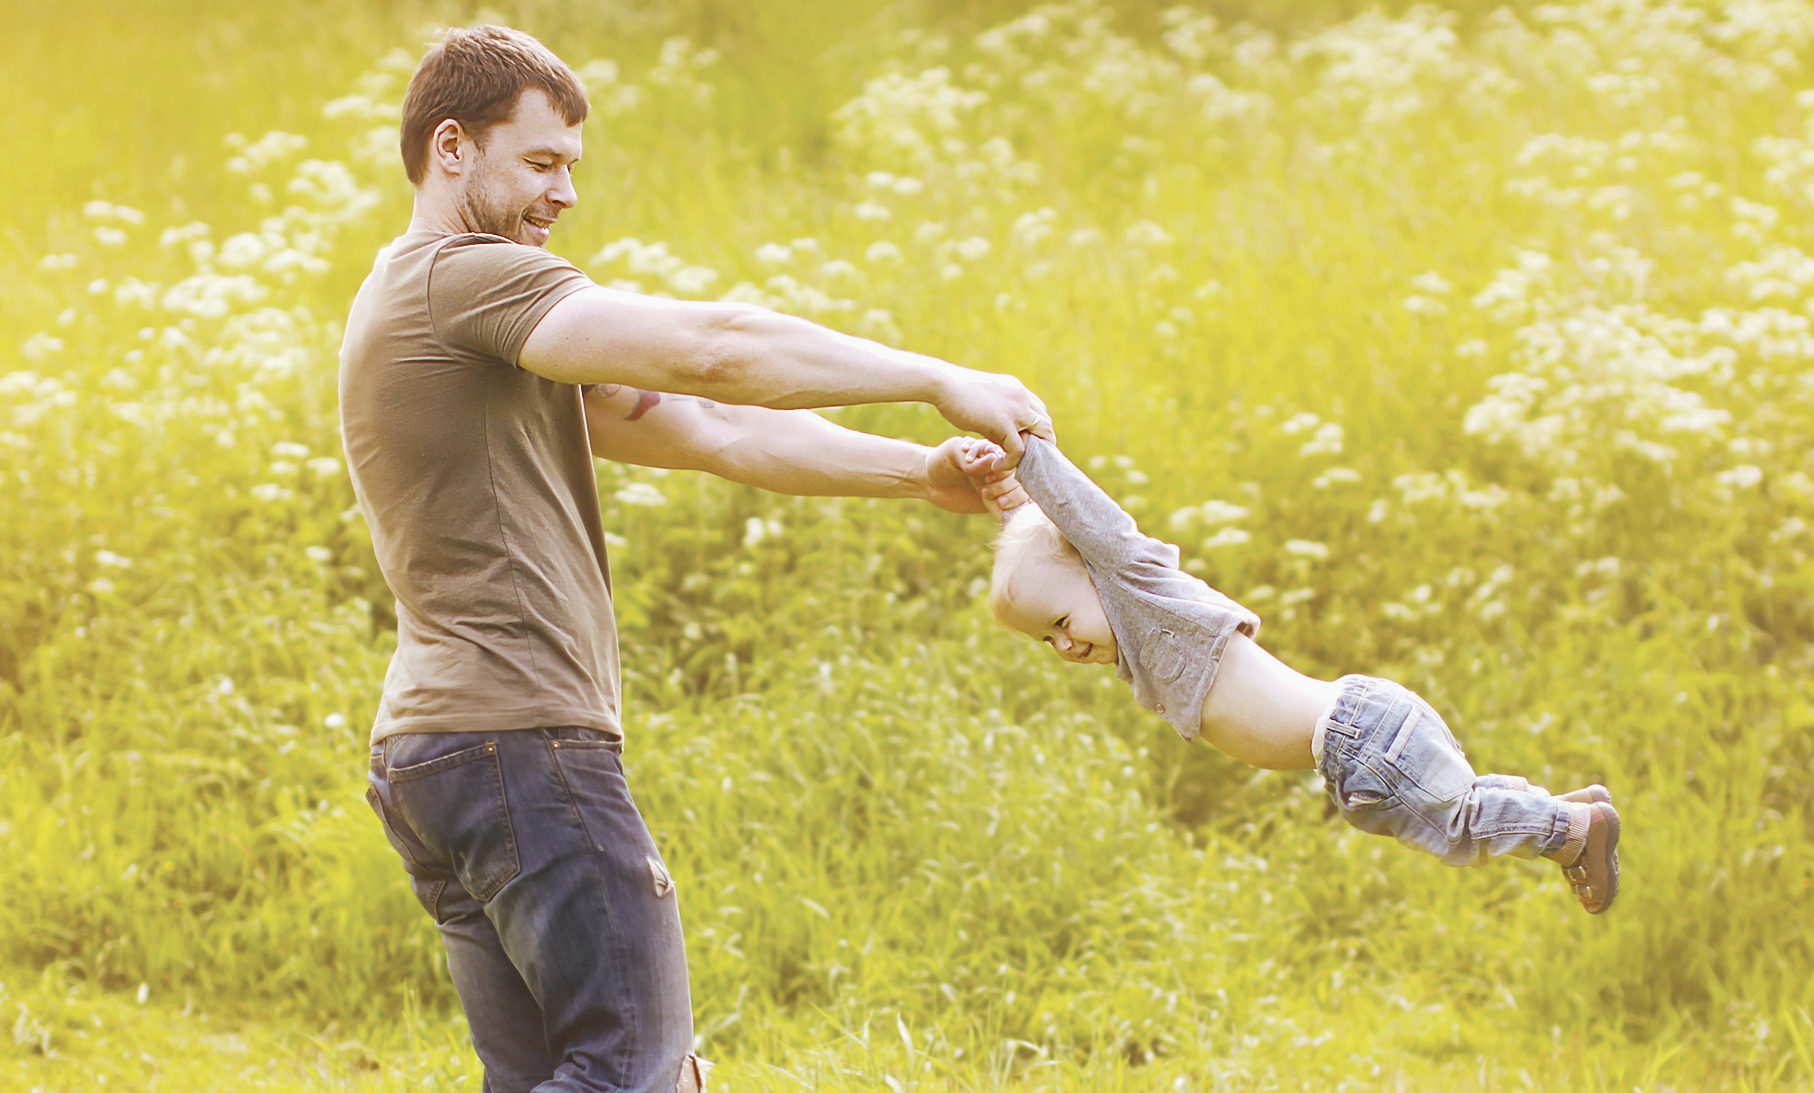 Alex says Scotland still has much to do to recognise the bond between fathers and their children. (library photo)